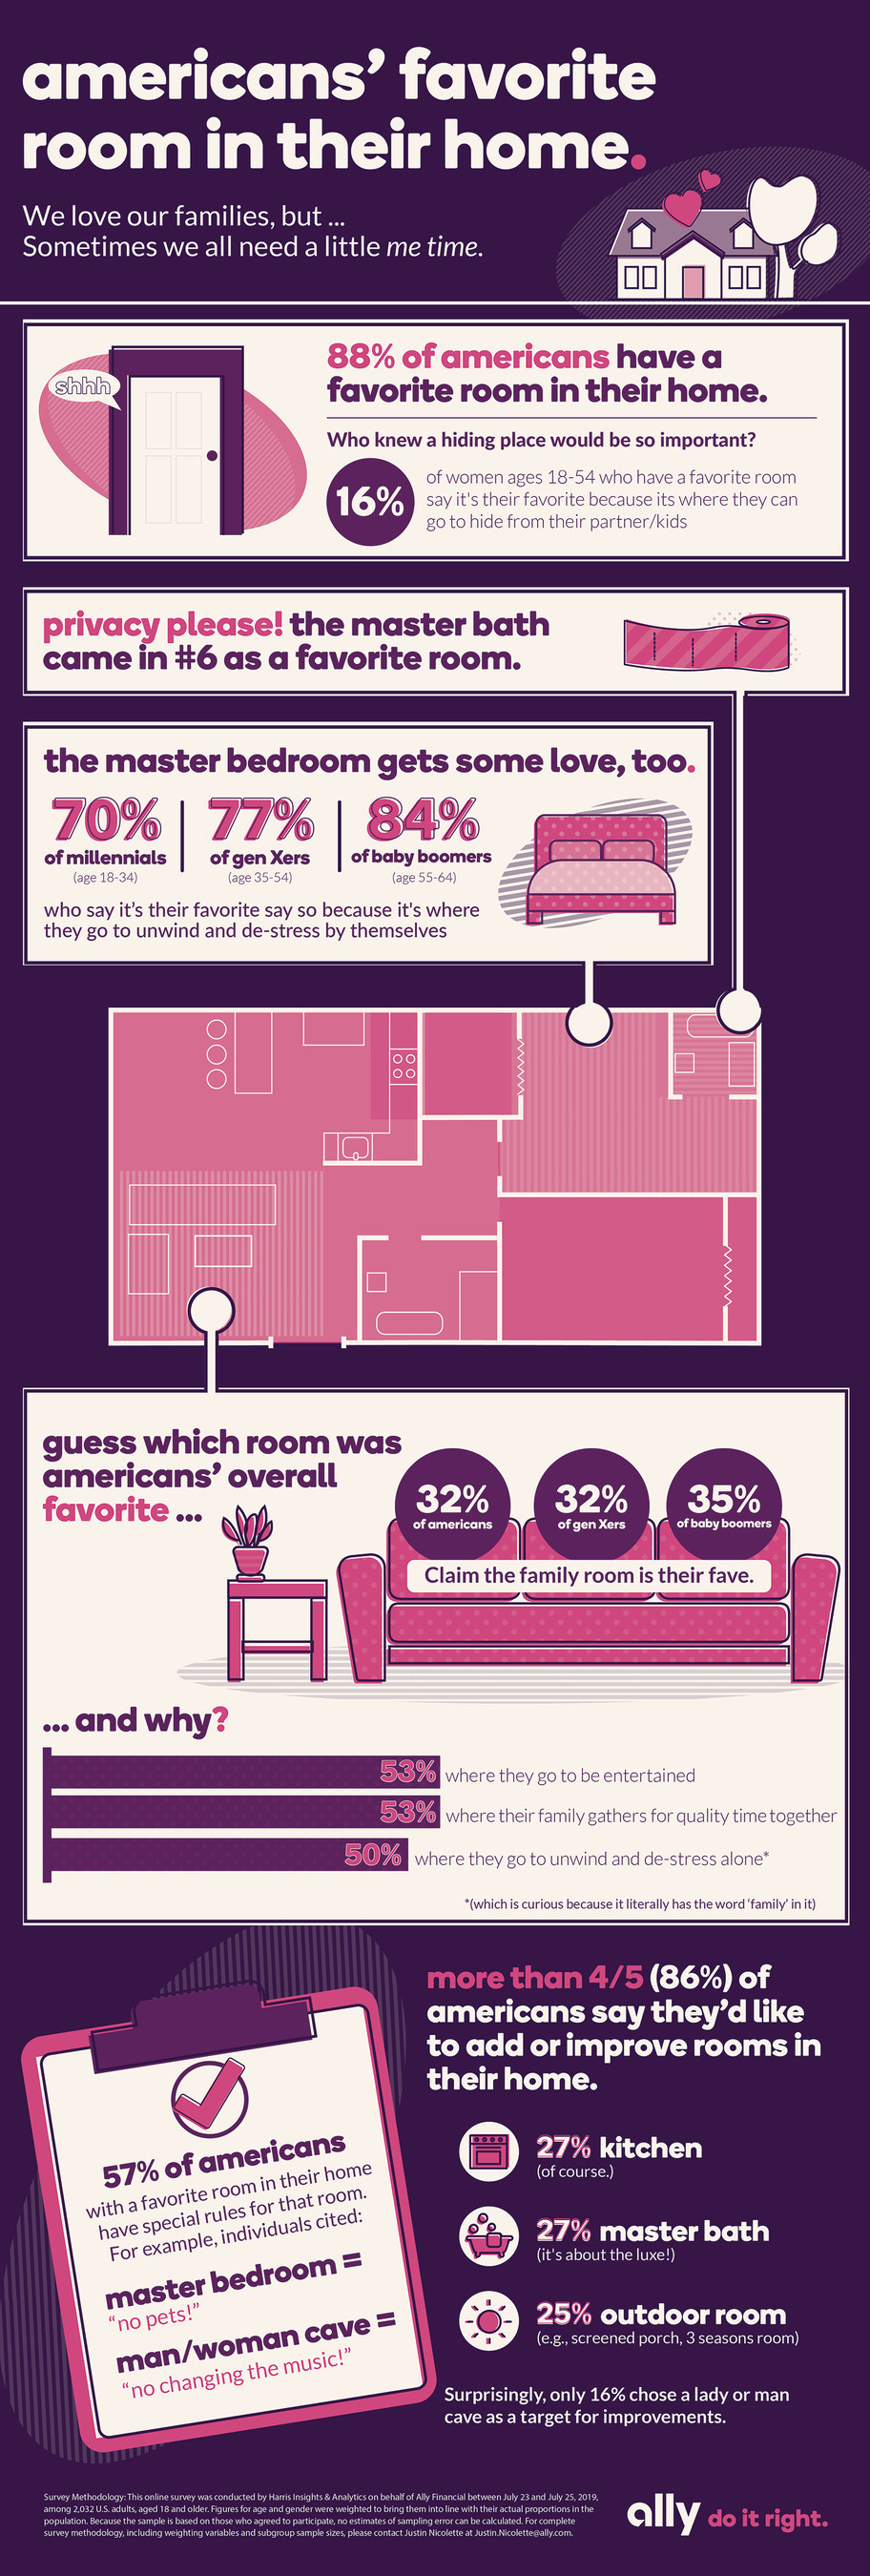 "A new independent survey from Ally Home reminds us that while everyone loves their families, a little ""me time"" can go a long way. According to the survey, women ages 18-54 who have a favorite room in their home are more likely to say a room is their favorite because they can hide from kids/spouse/partner than those ages 55+ (16% vs. 5%). See more survey results in this infographic."